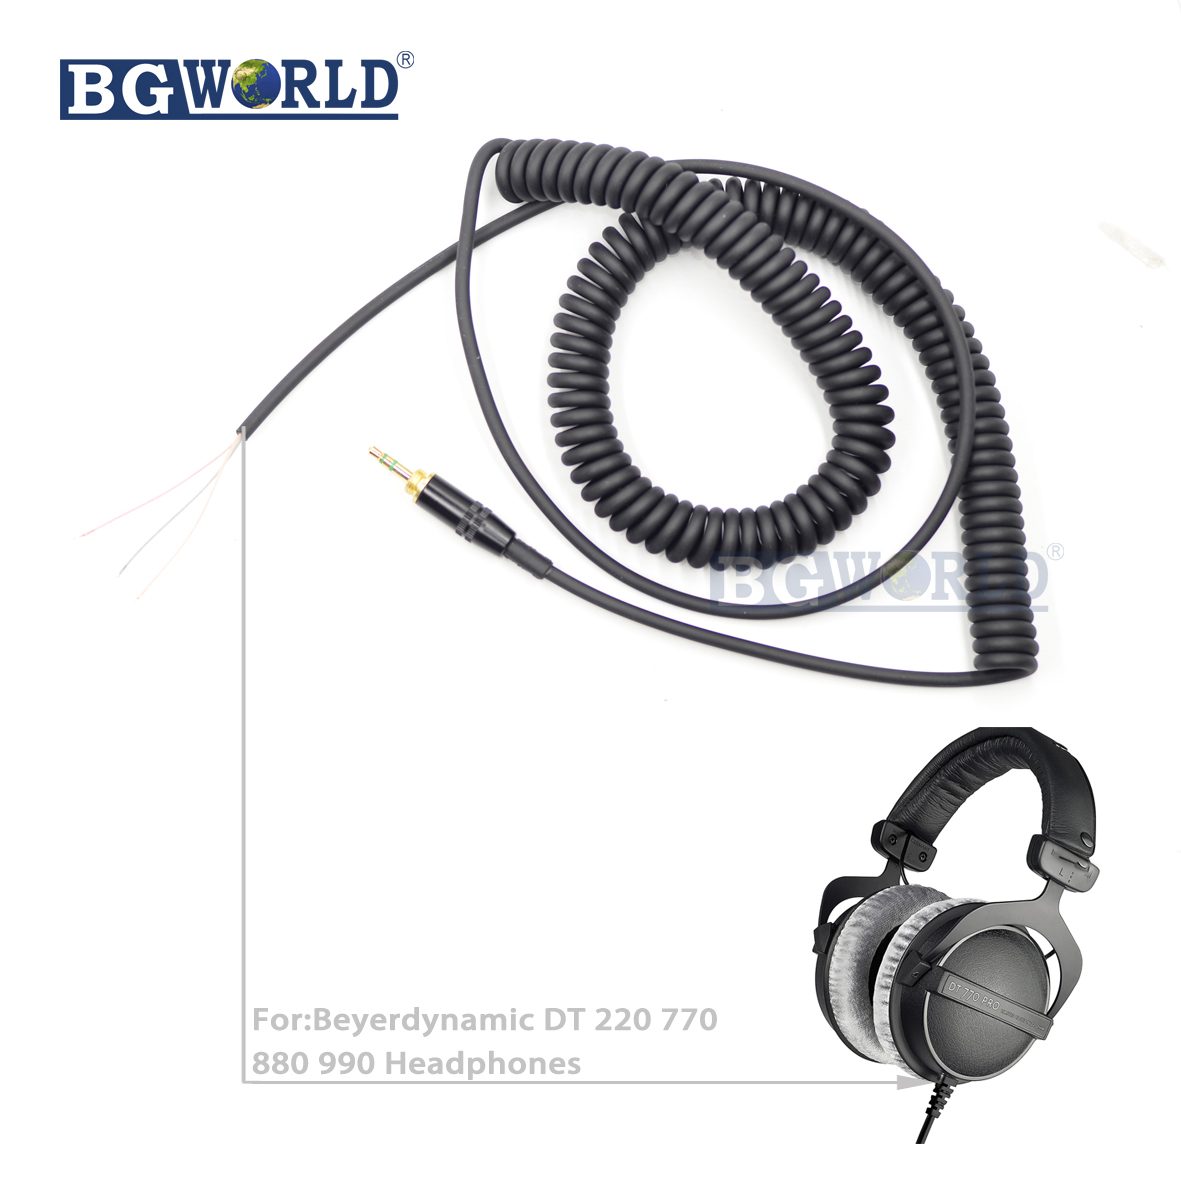 BGWORLD Replacement Cable Cord Wire Plug line earphone